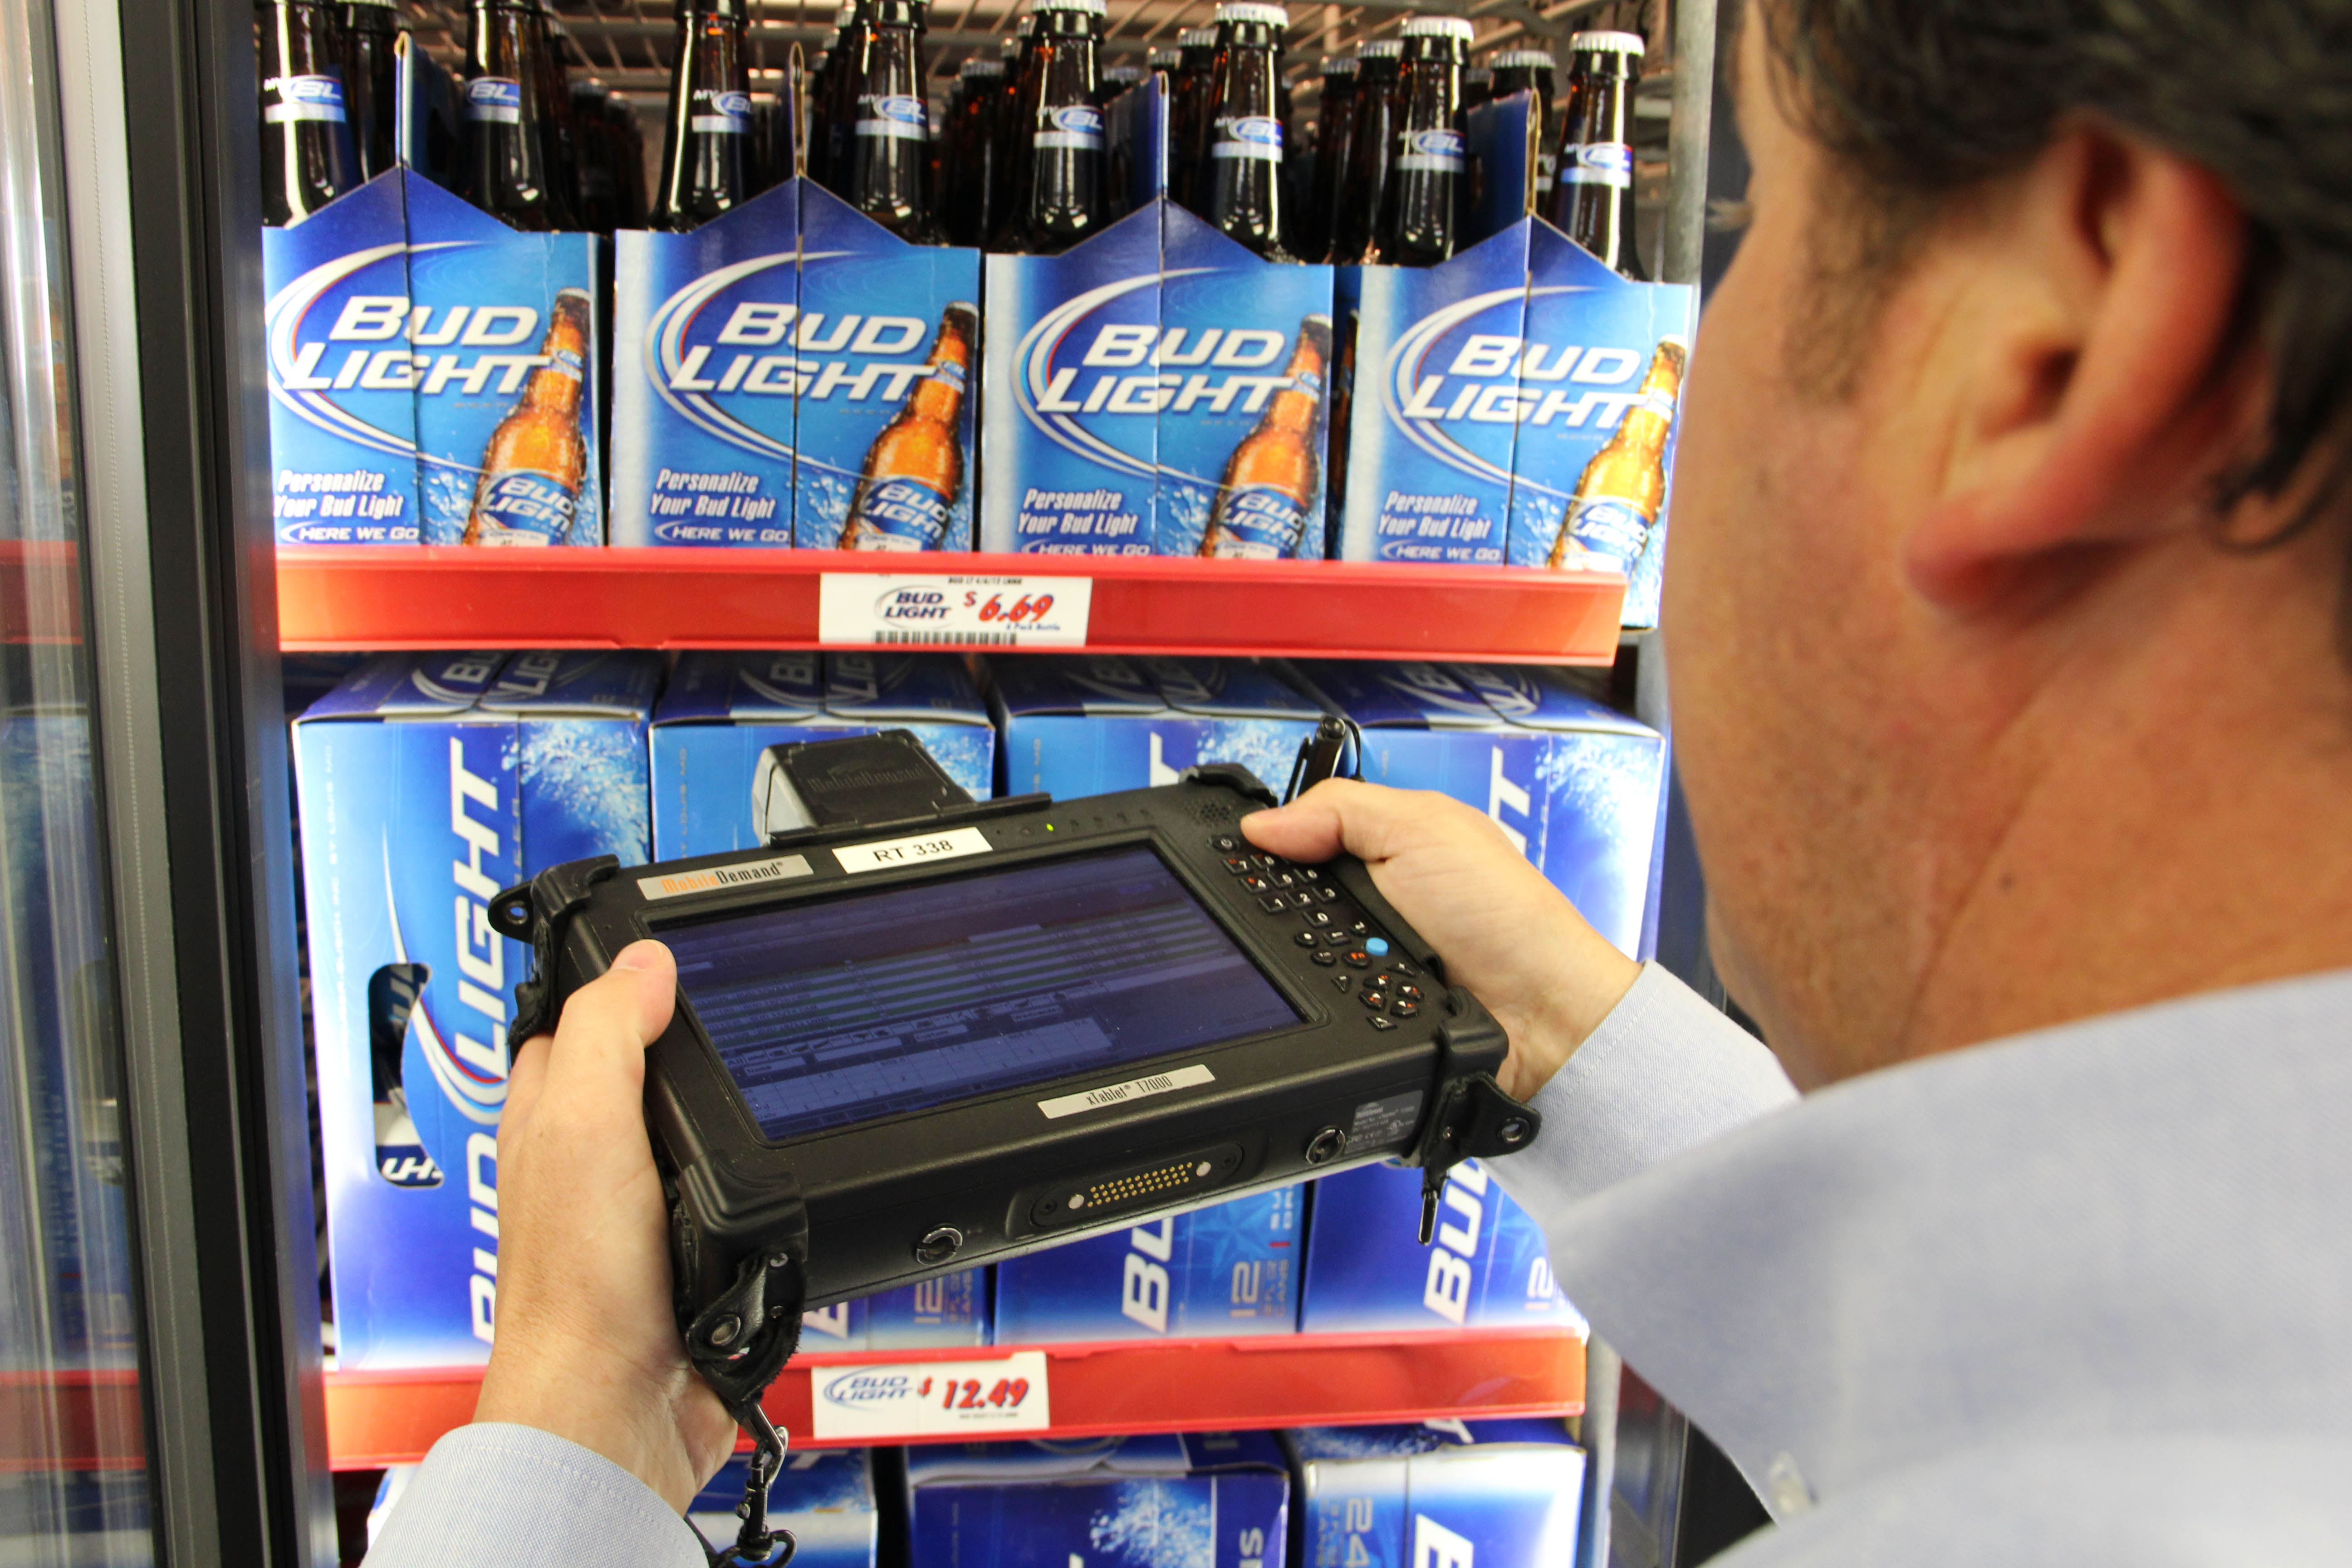 Ben E. Keith beer sales rep goes from a hot car to a convenience store cooler to take inventory at several stops throughout the day.